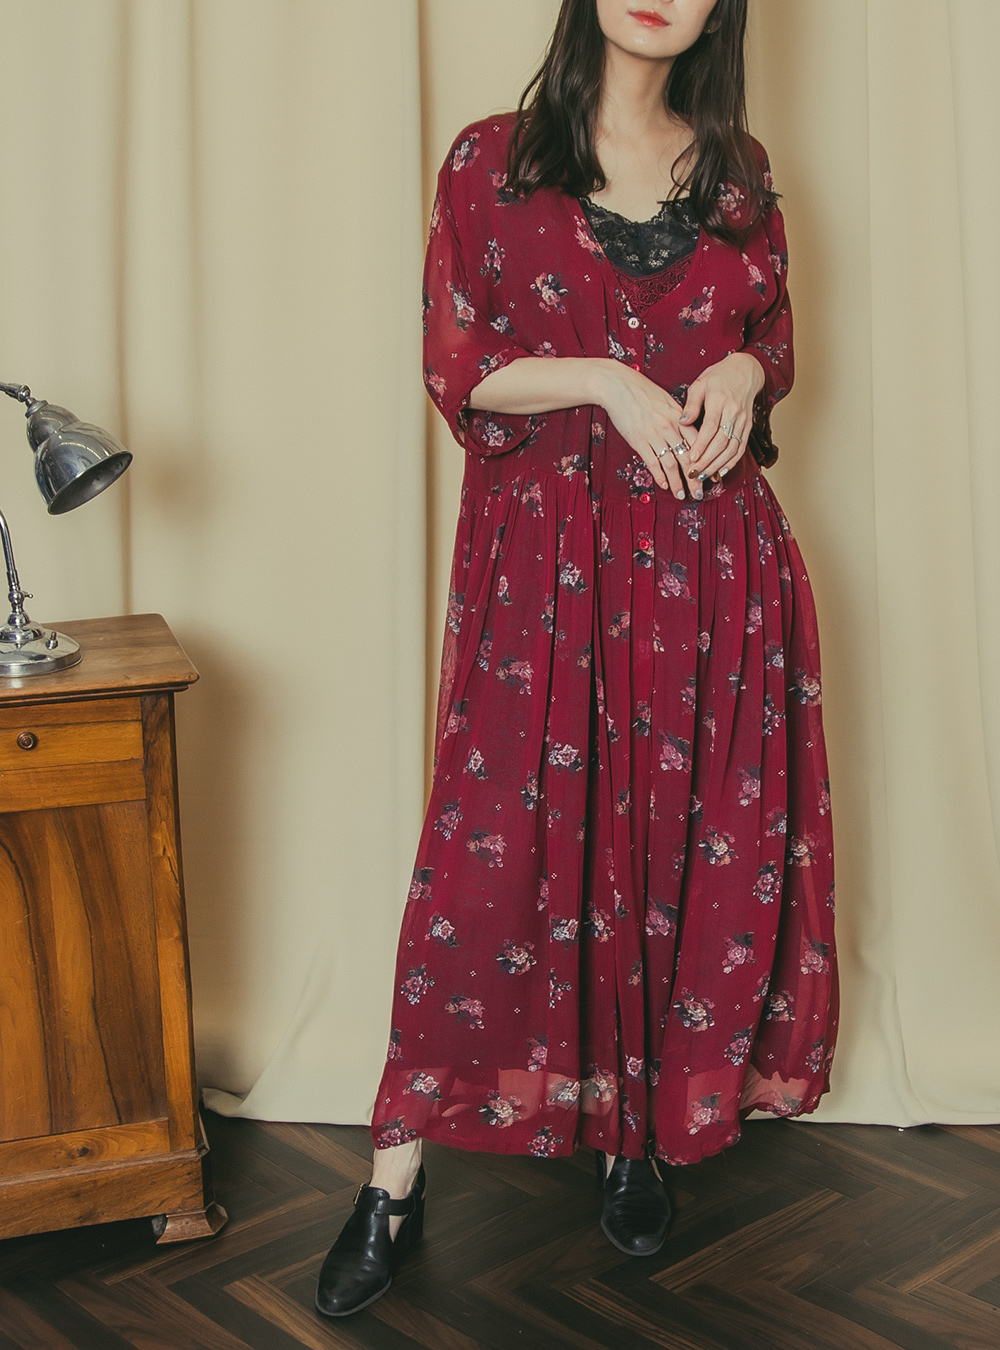 Wine Red Flower Print Chiffon Dress